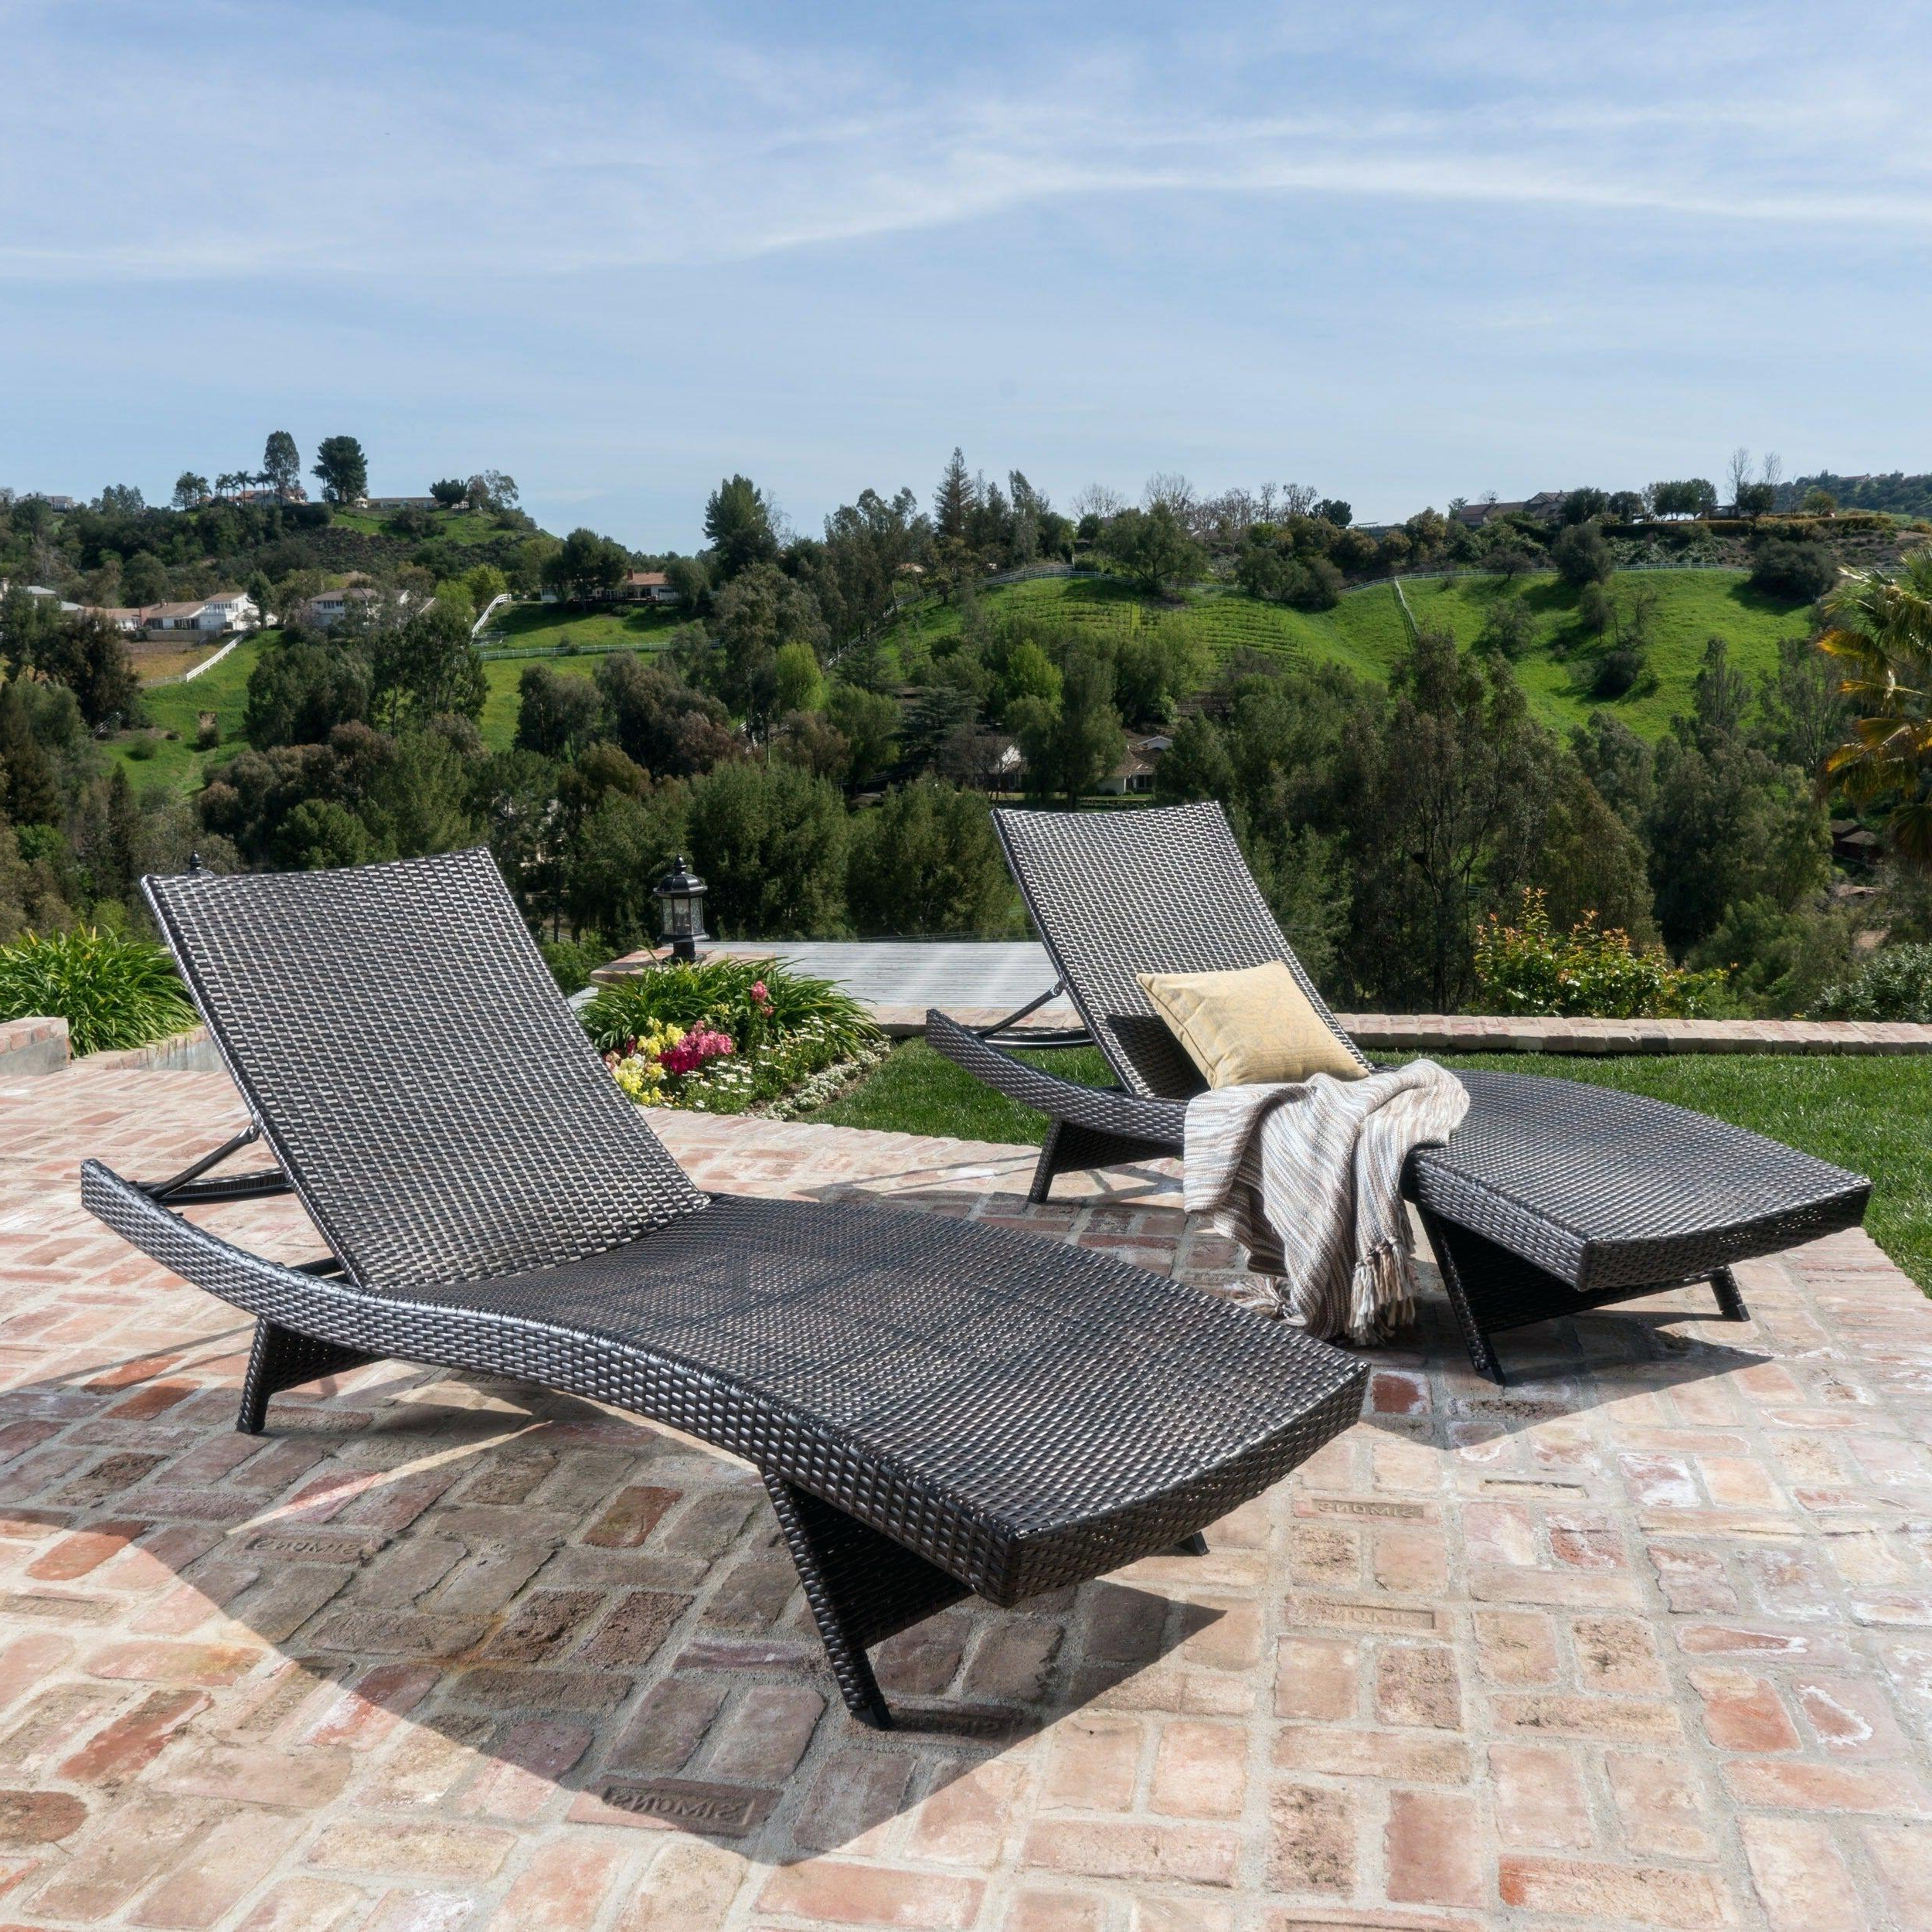 Preferred Chaise Lounge Patio Lowes Patio Chaise Lounge Chairs Chaise In Cosco Outdoor Aluminum Chaise Lounge Chairs (Gallery 8 of 25)